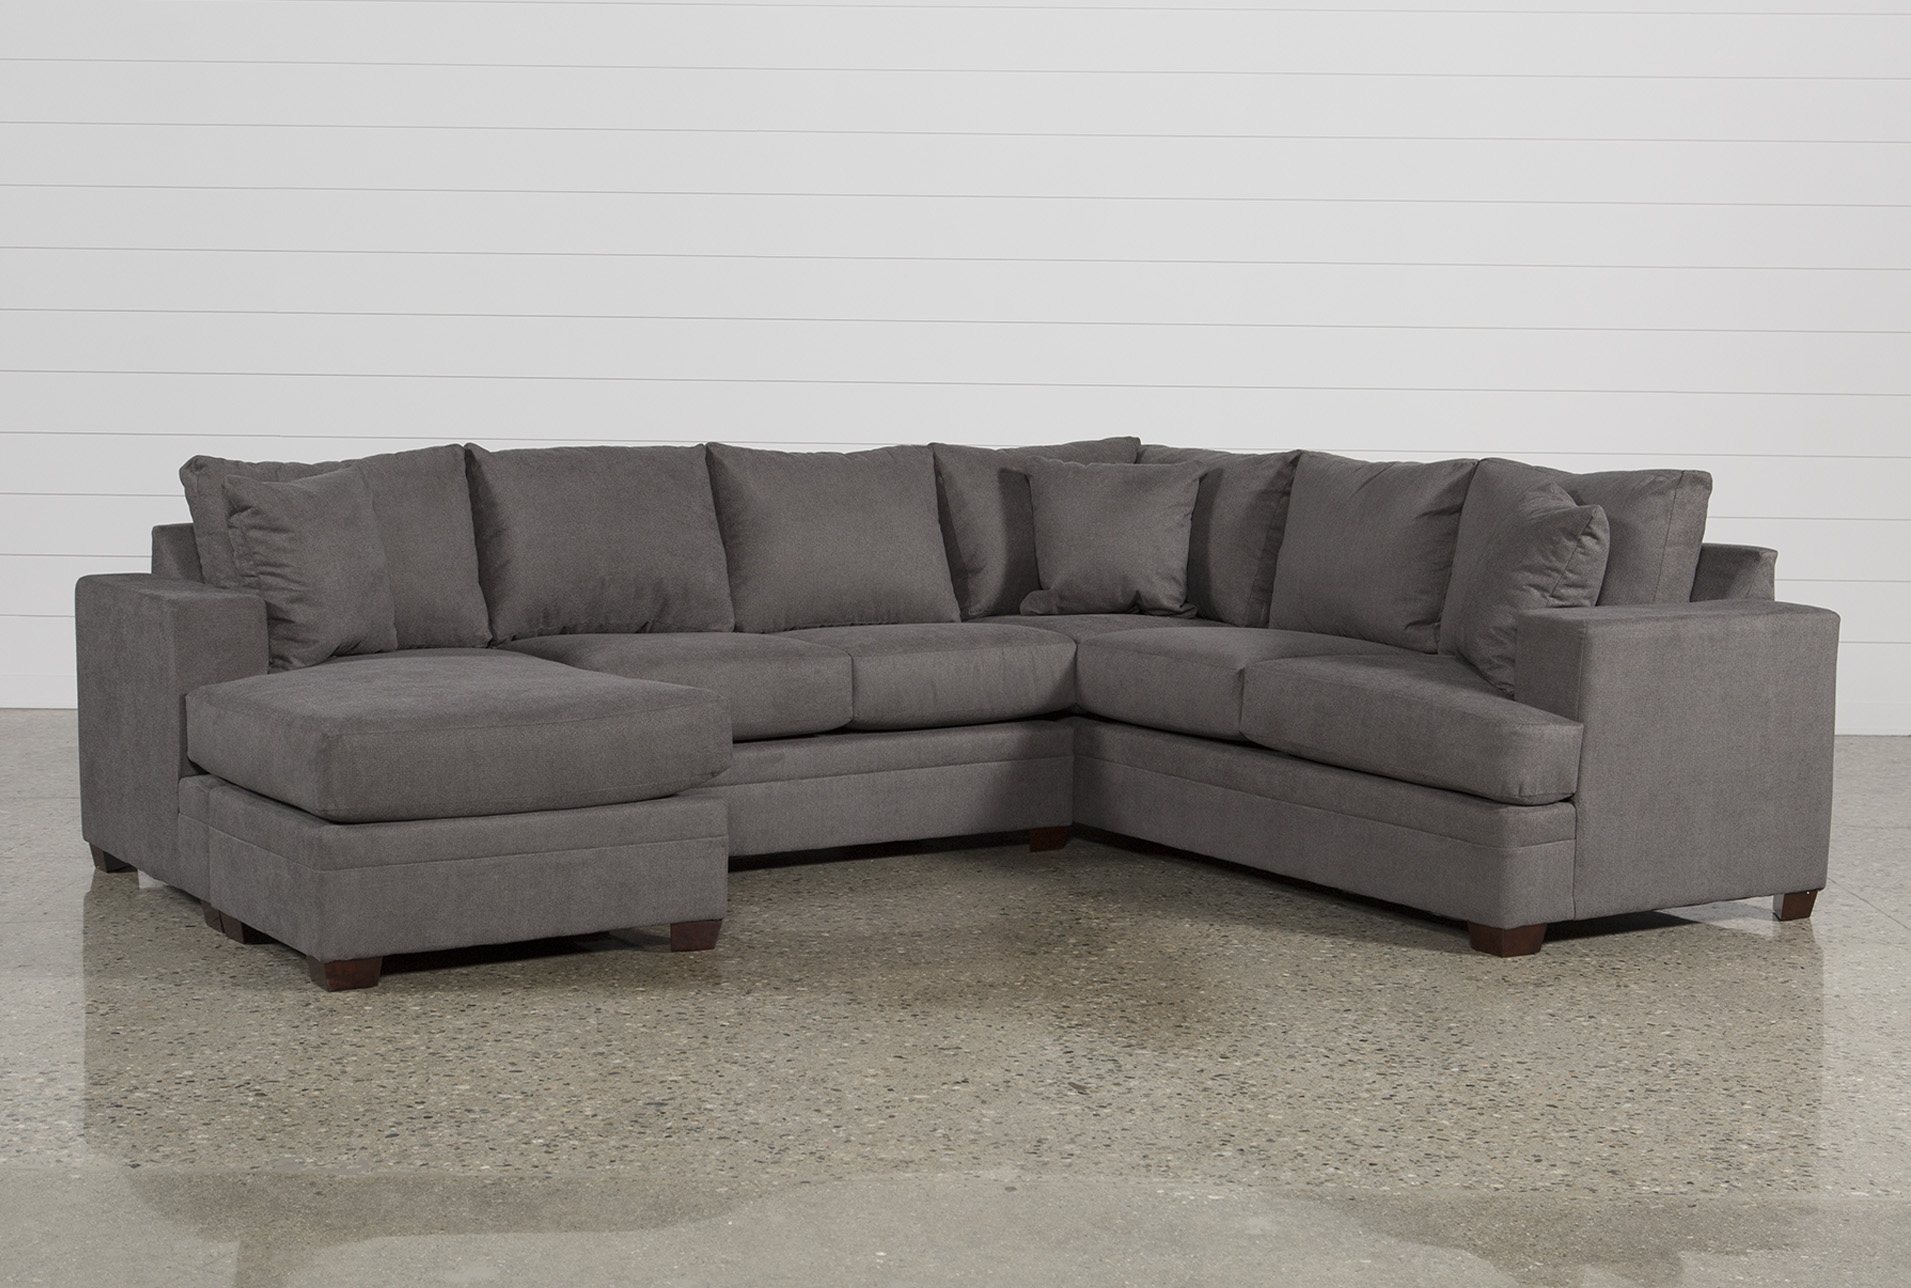 sofa w chaise corner recliner sectionals sectional sofas living spaces kerri 2 piece laf